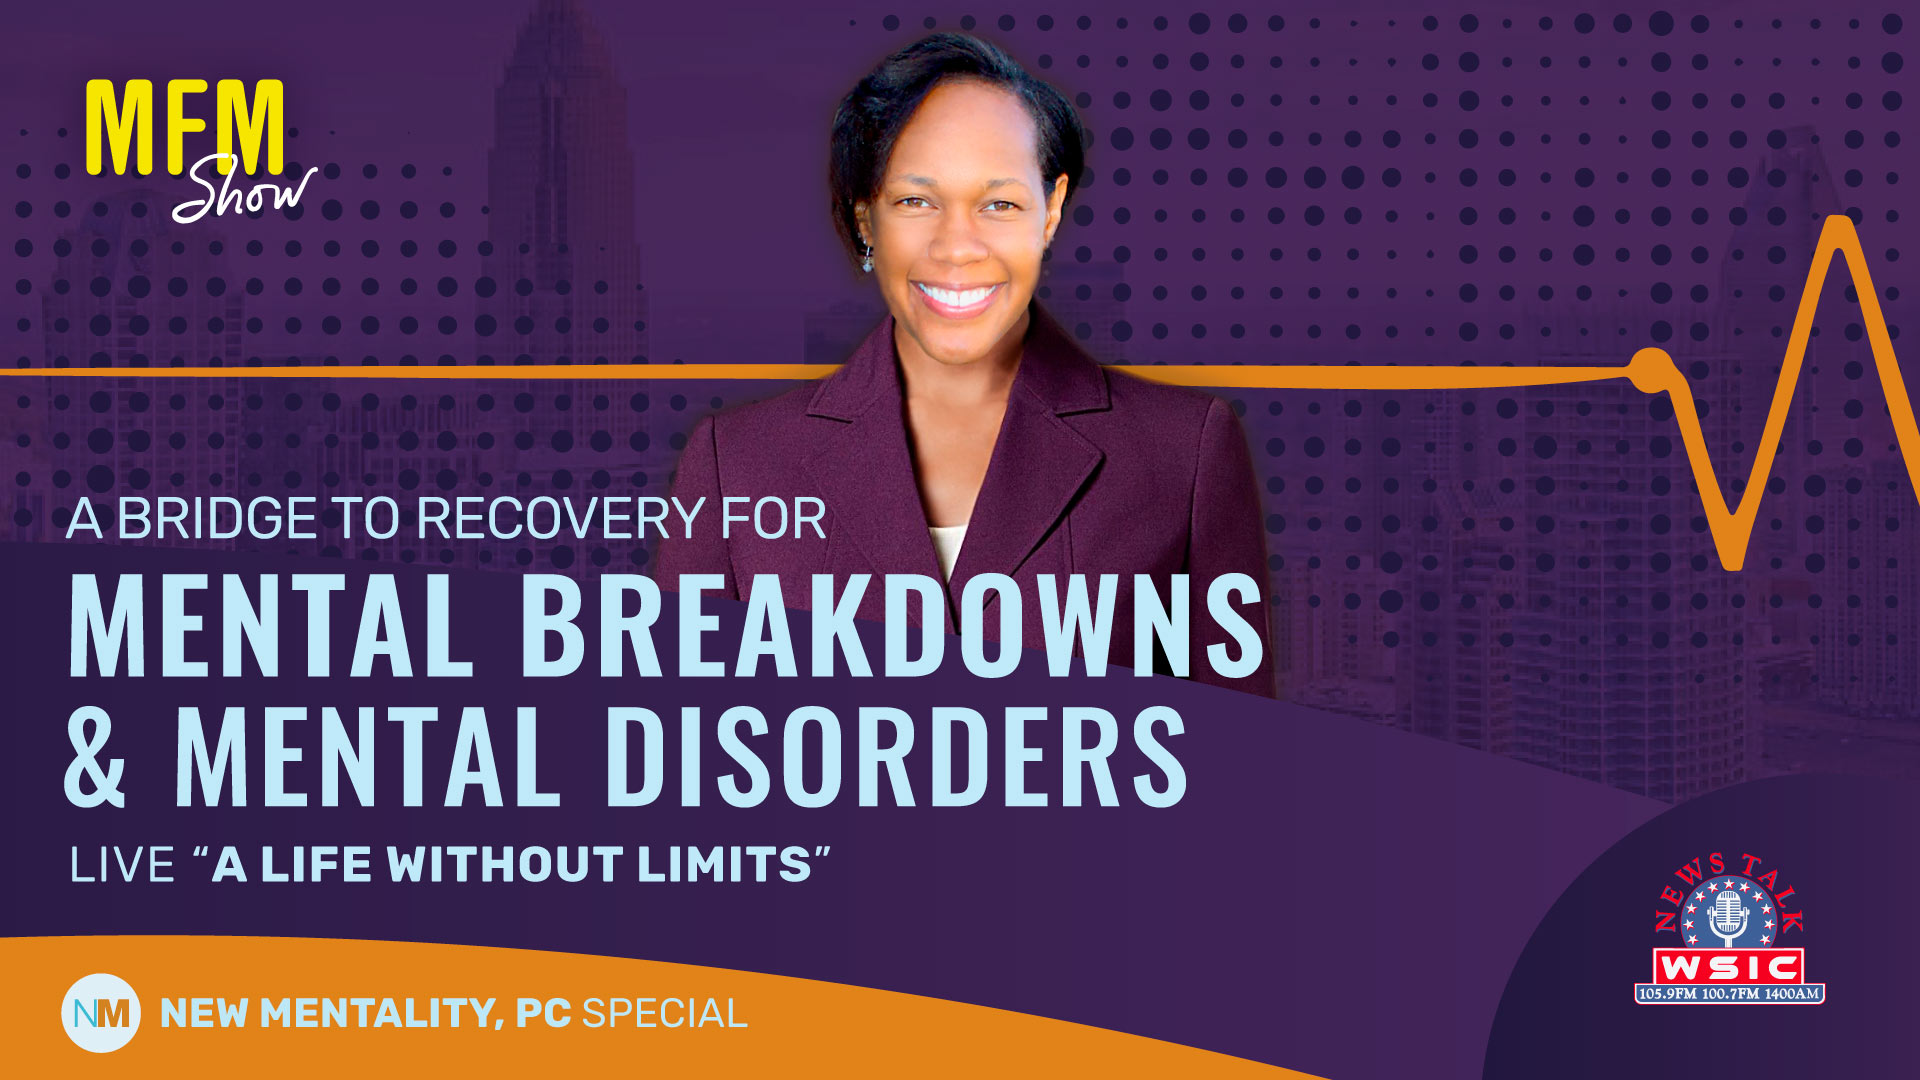 A Bridge to Recovery for Mental Breakdowns and Mental Disorders